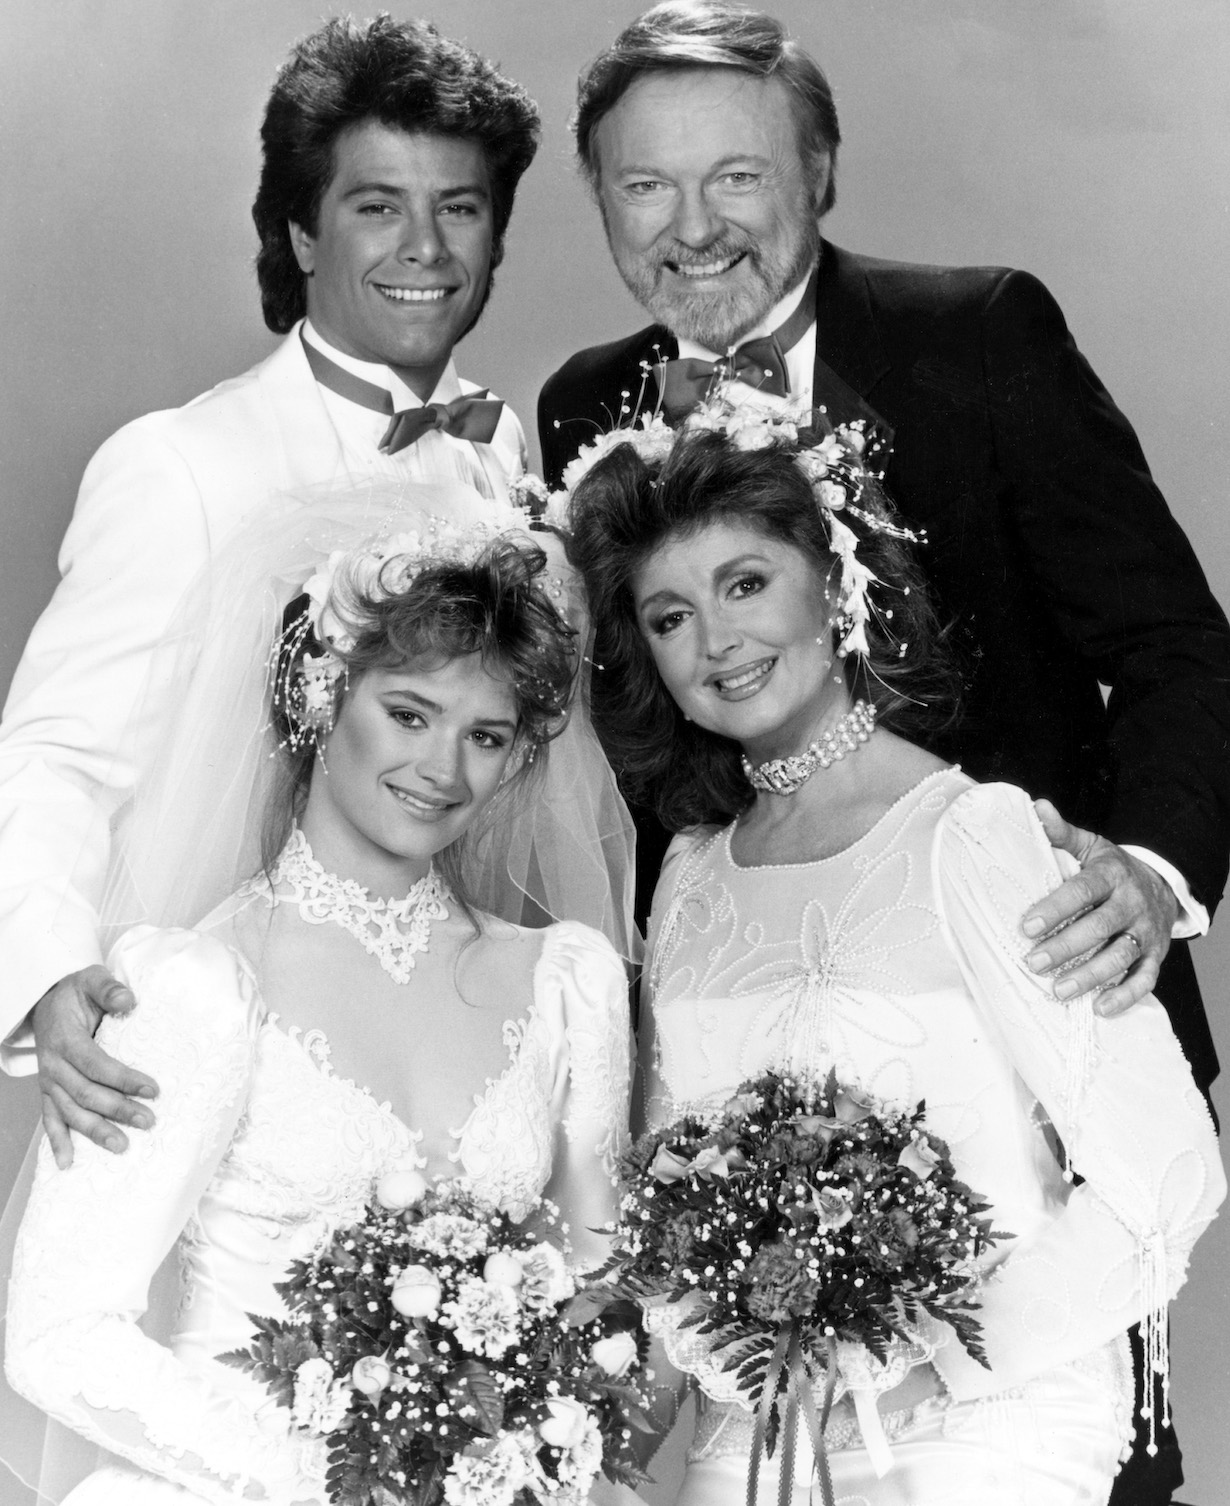 DAYS OF OUR LIVES, mickey maggie melissa pete wedding 1986 Michael Leon, John Clarke, (bottom, l-r) Lisa Trusel, Suzanne Rogers, Season 23, January 31, 1986. 1965 -. (c) Columbia TriStar Television/ Courtesy: Everett Collection.